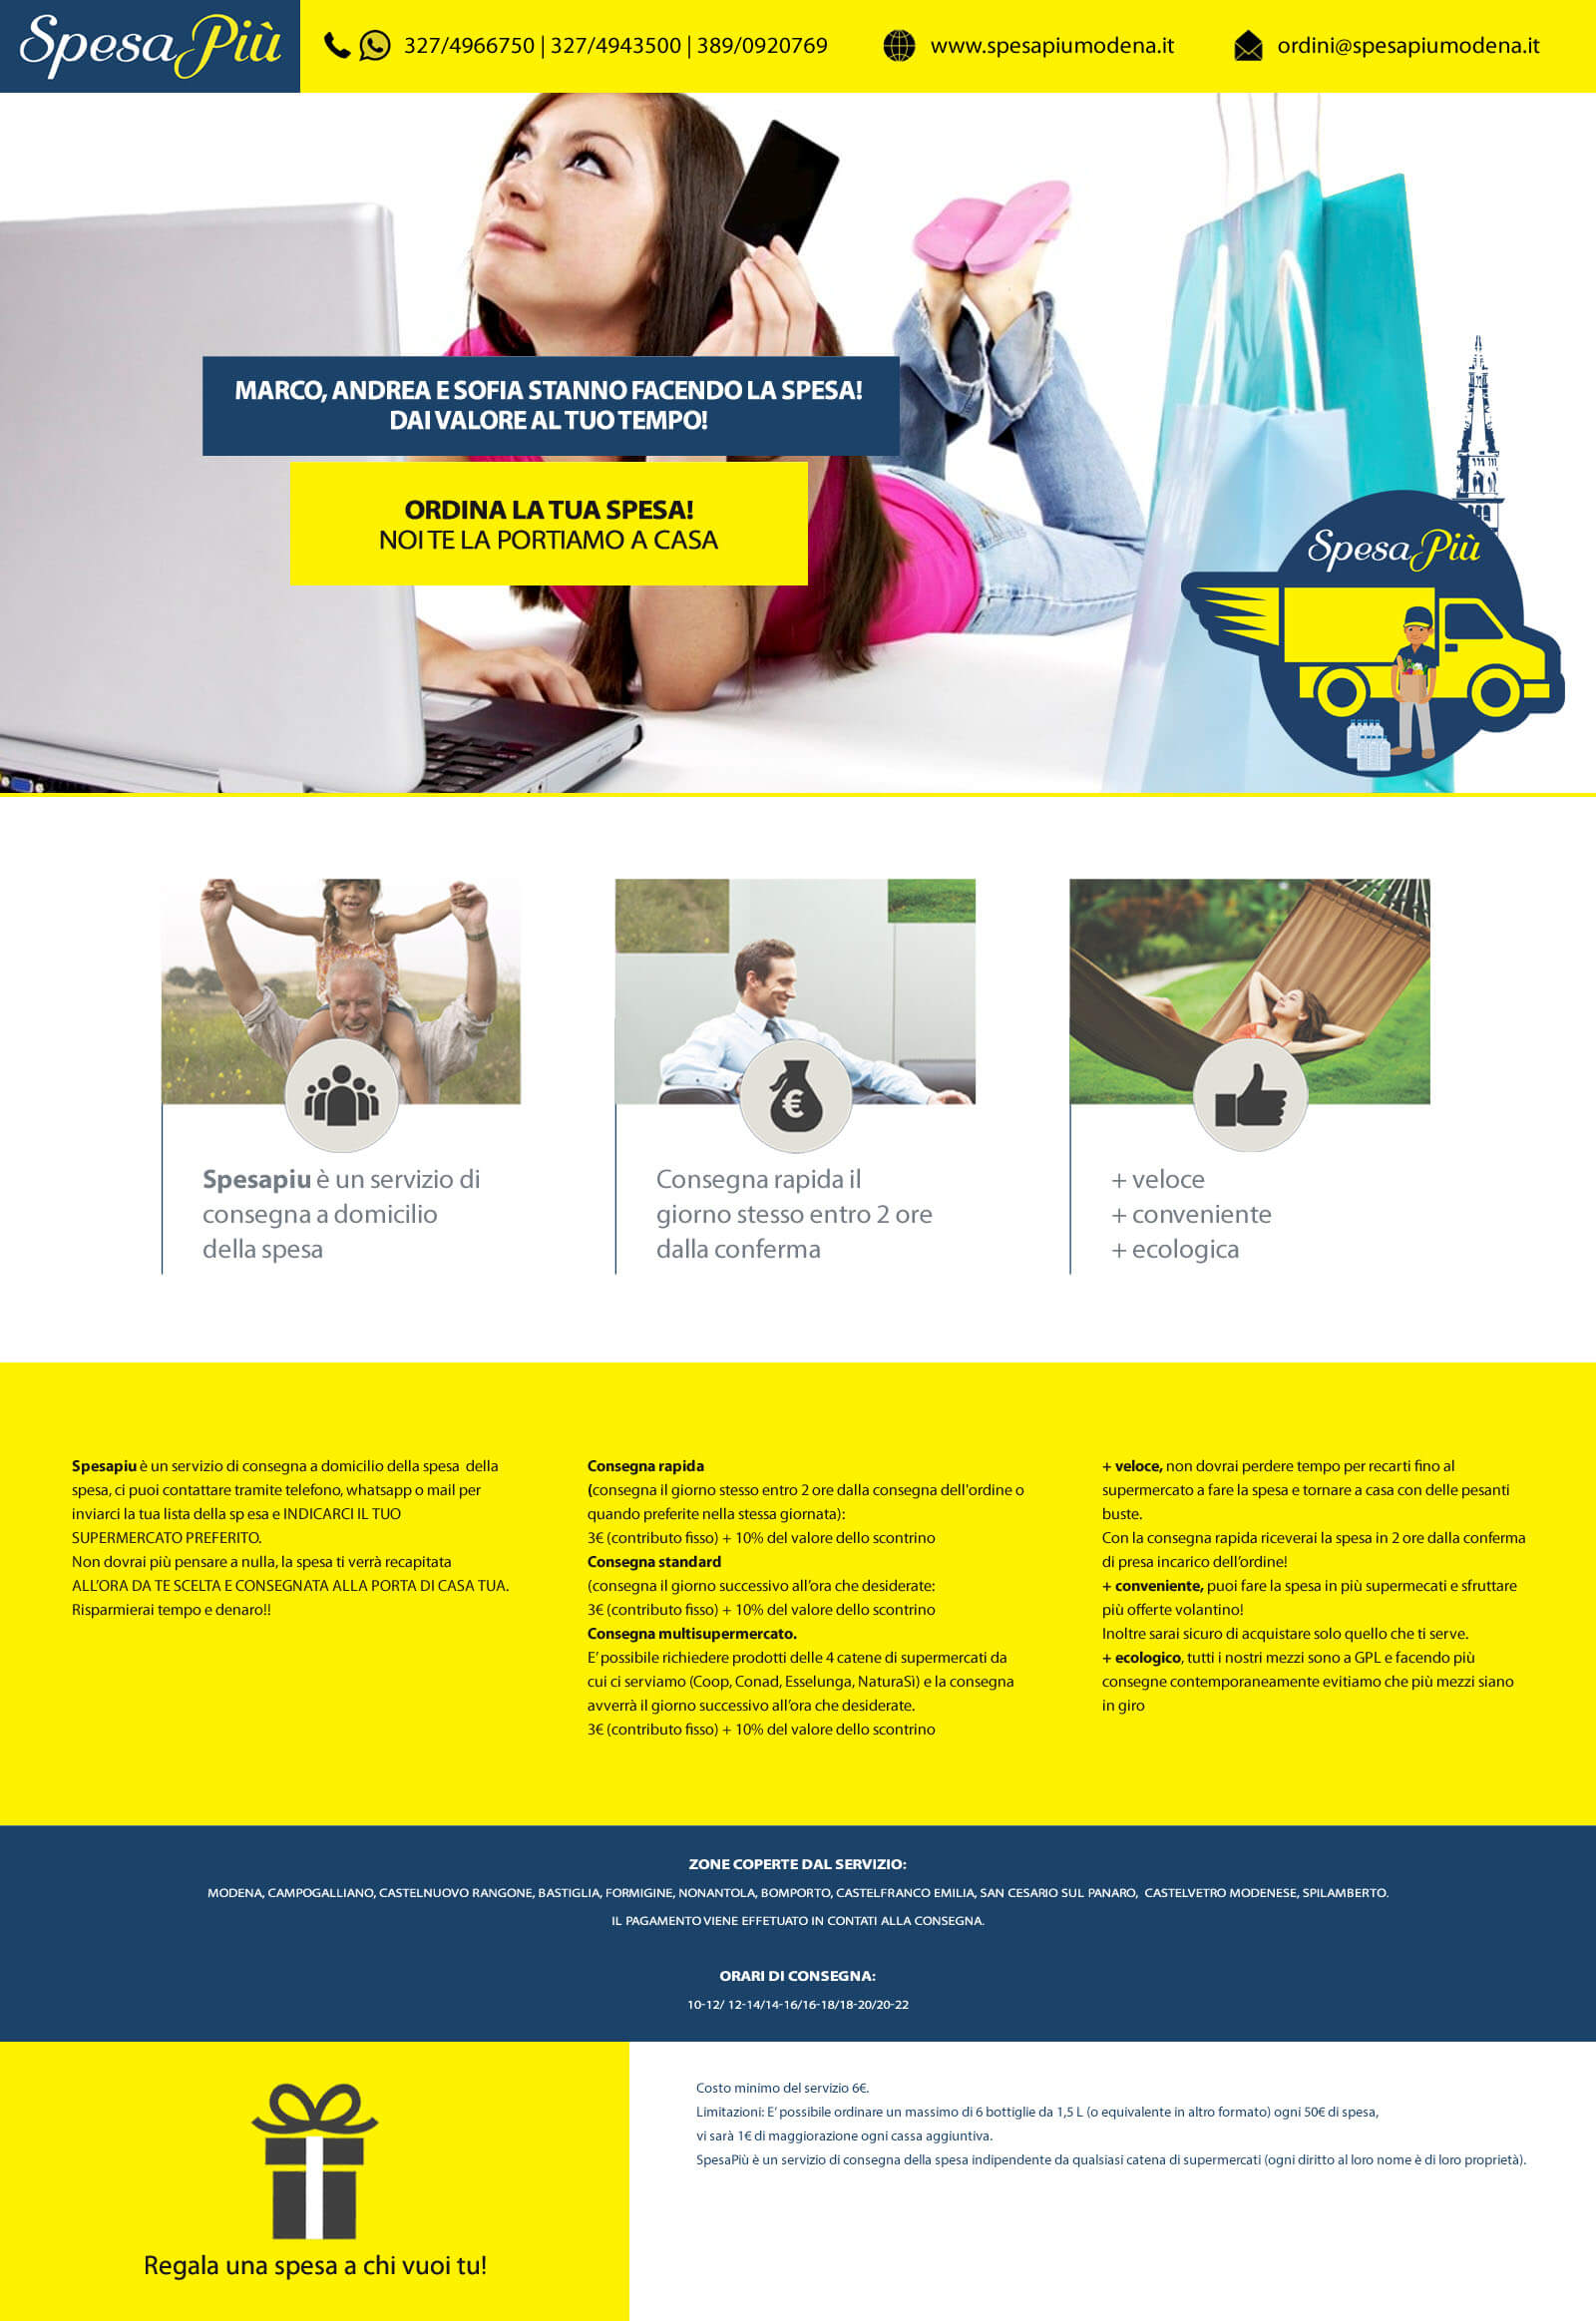 Professional landing page, web banner, web graphic design